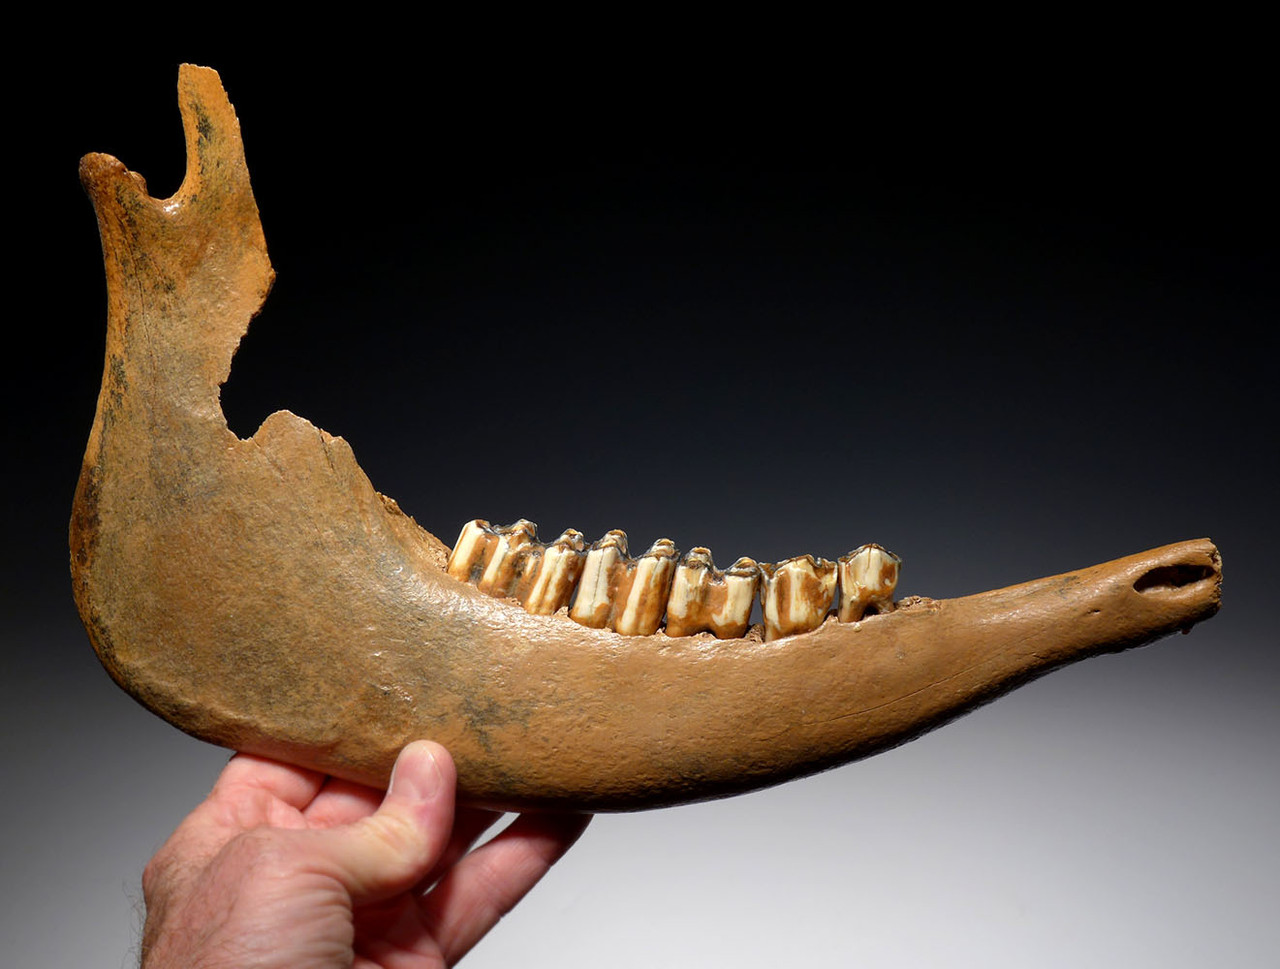 LARGE FOSSIL AUROCHS JAW WITH ORIGINAL MOLARS FROM THE EUROPEAN ICE AGE *LMX270